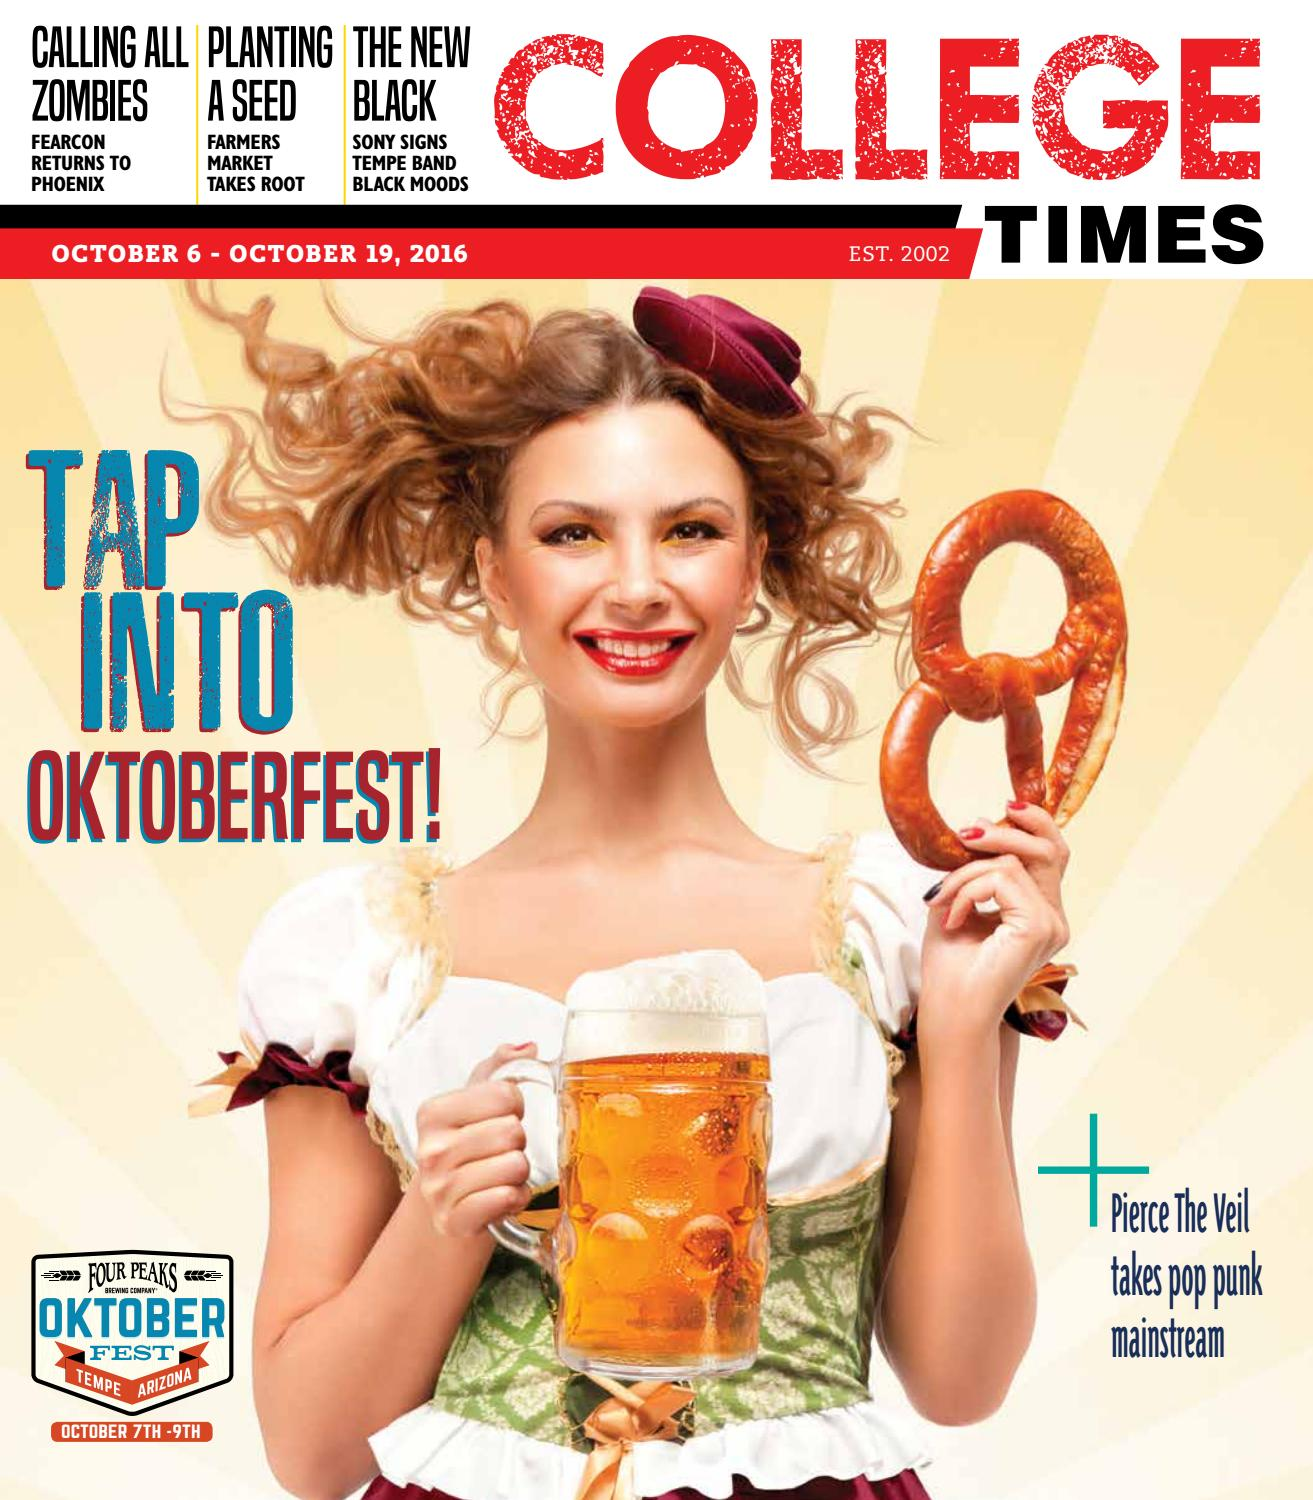 College times oct 6 2016 by times media group issuu fandeluxe Images